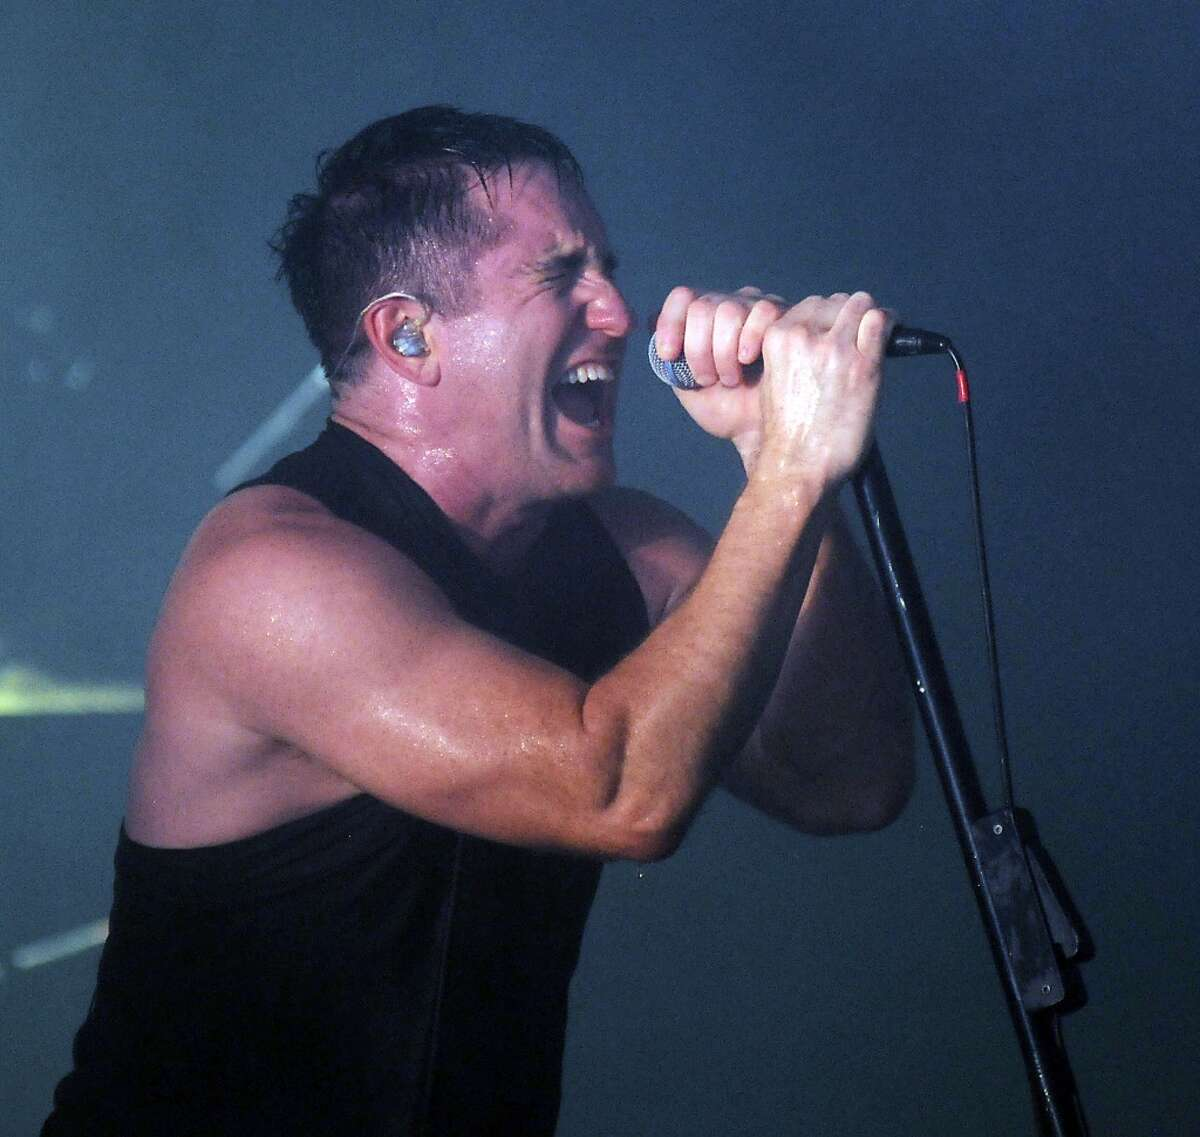 """Nine Inch Nails Why: A line of stellar albums that made industrial mainstream while putting on great, harrowing live shows. Plus Trent Reznor is now an Oscar winner. Who saw that 25 years ago?  Why not: Oldsters still traumatized by the """"Closer"""" music video in 1994."""